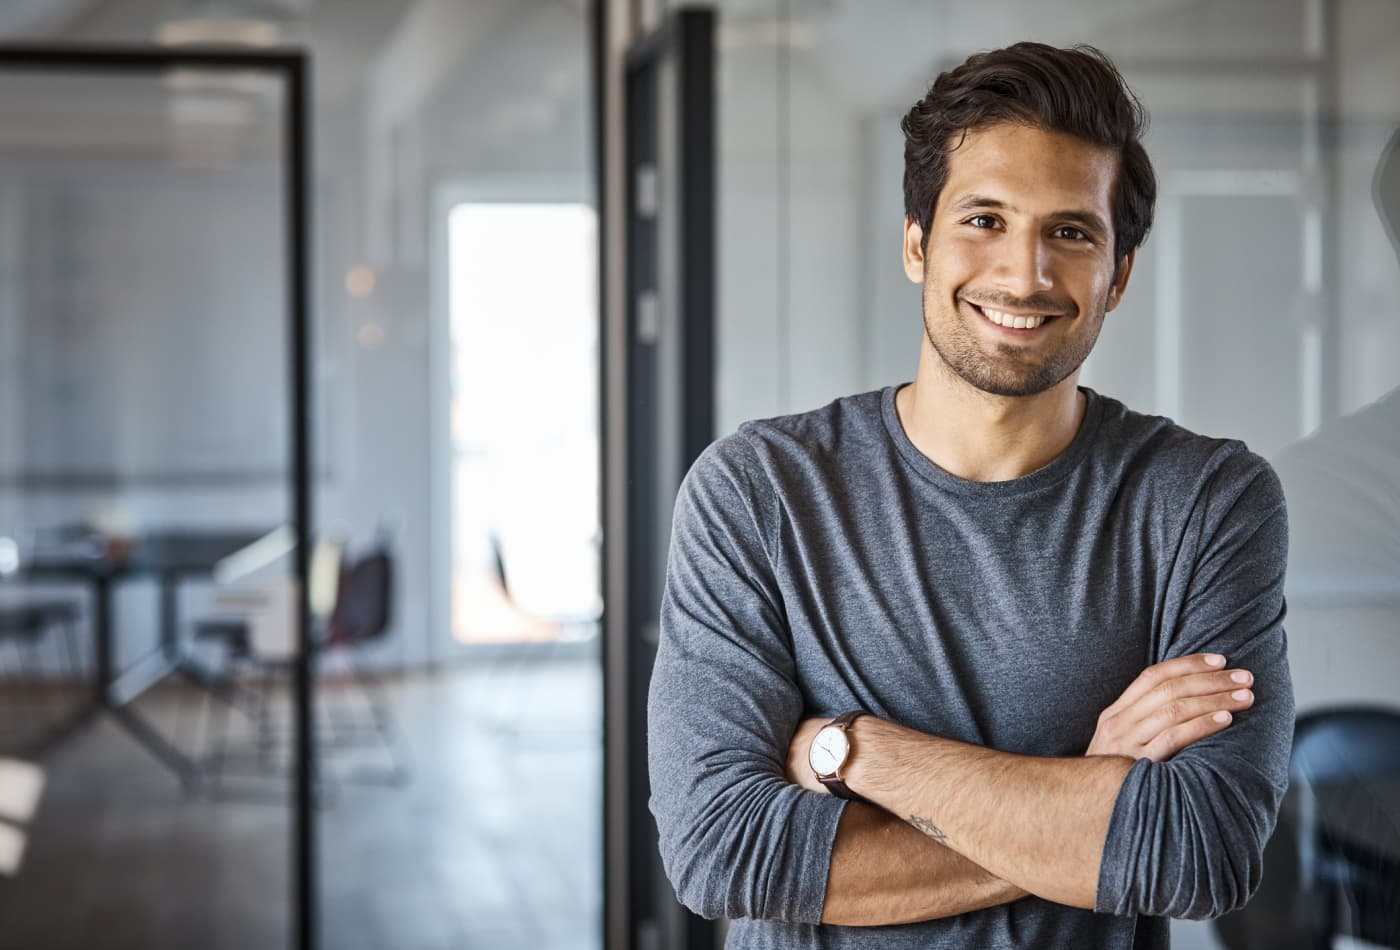 Why now may be the perfect time to start your business, according to the bestselling author of The Lean Startup